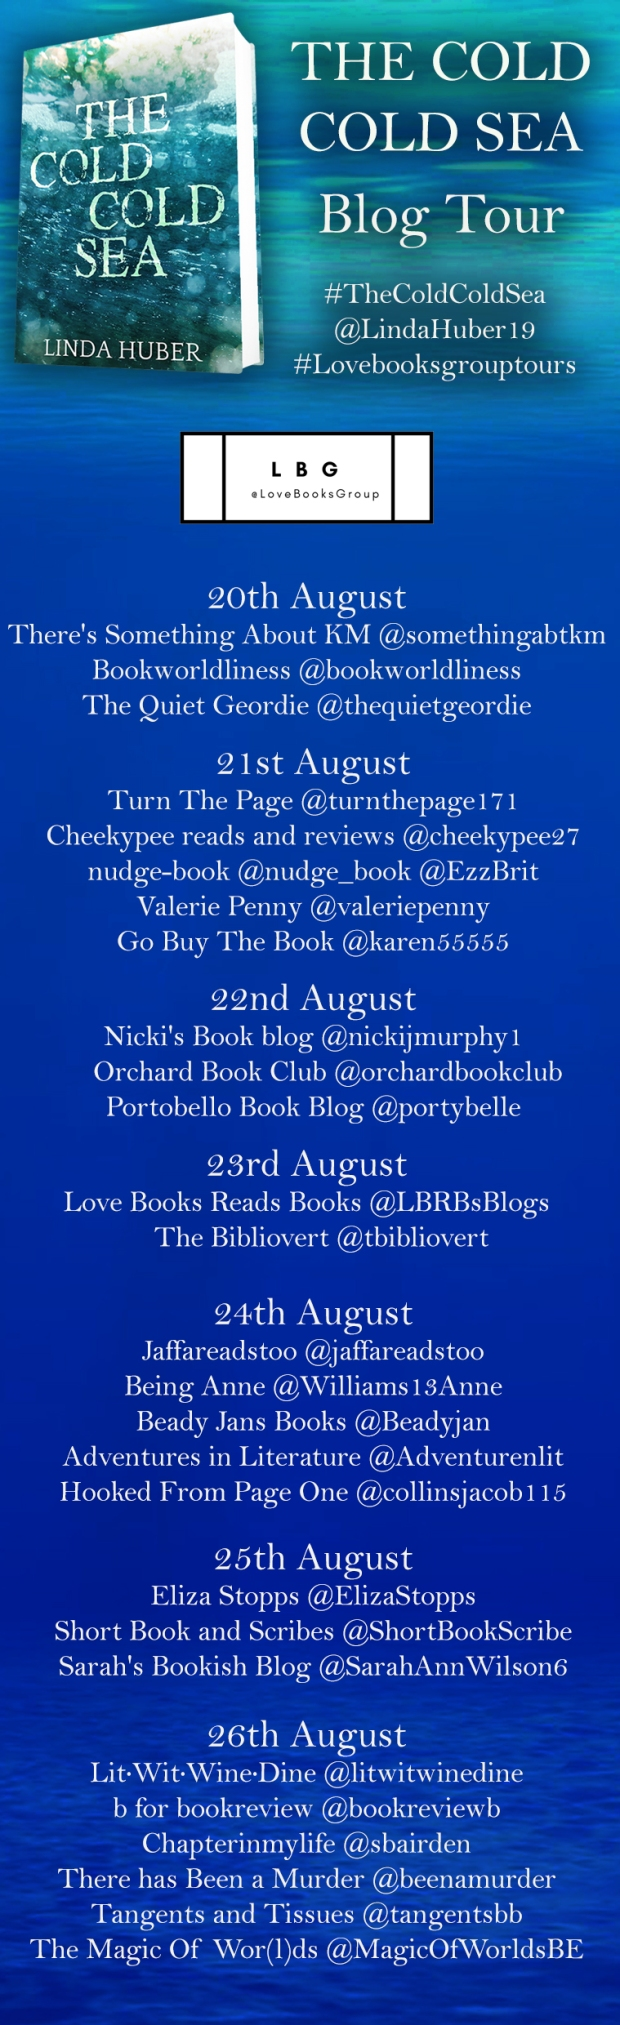 The Cold Cold Sea Blog Tour Poster